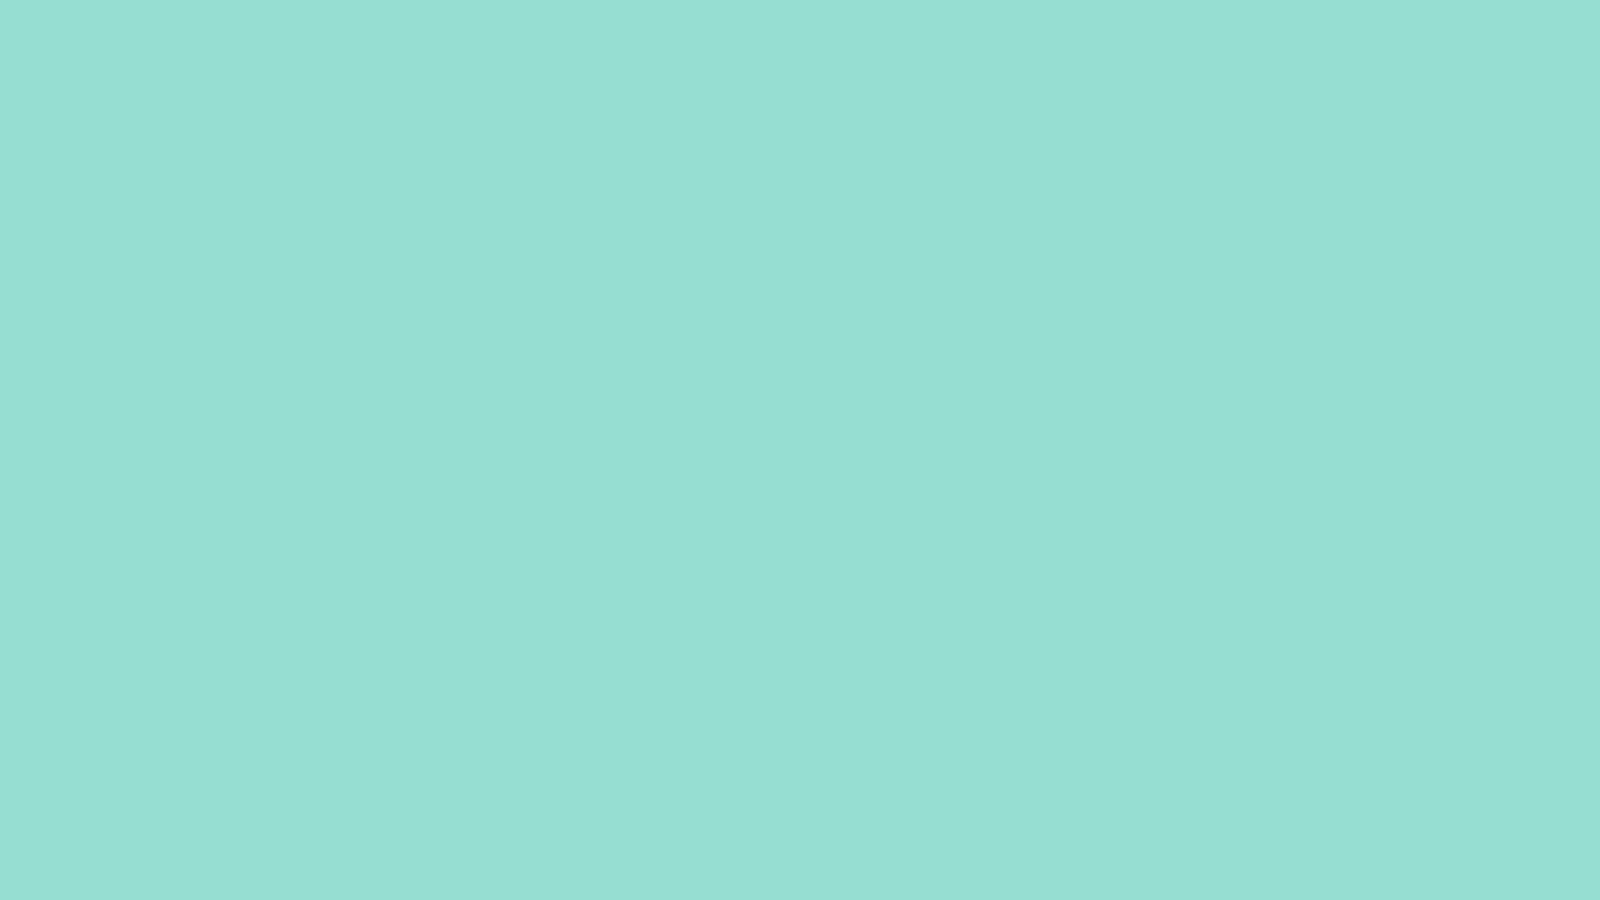 1600x900 Pale Robin Egg Blue Solid Color Background